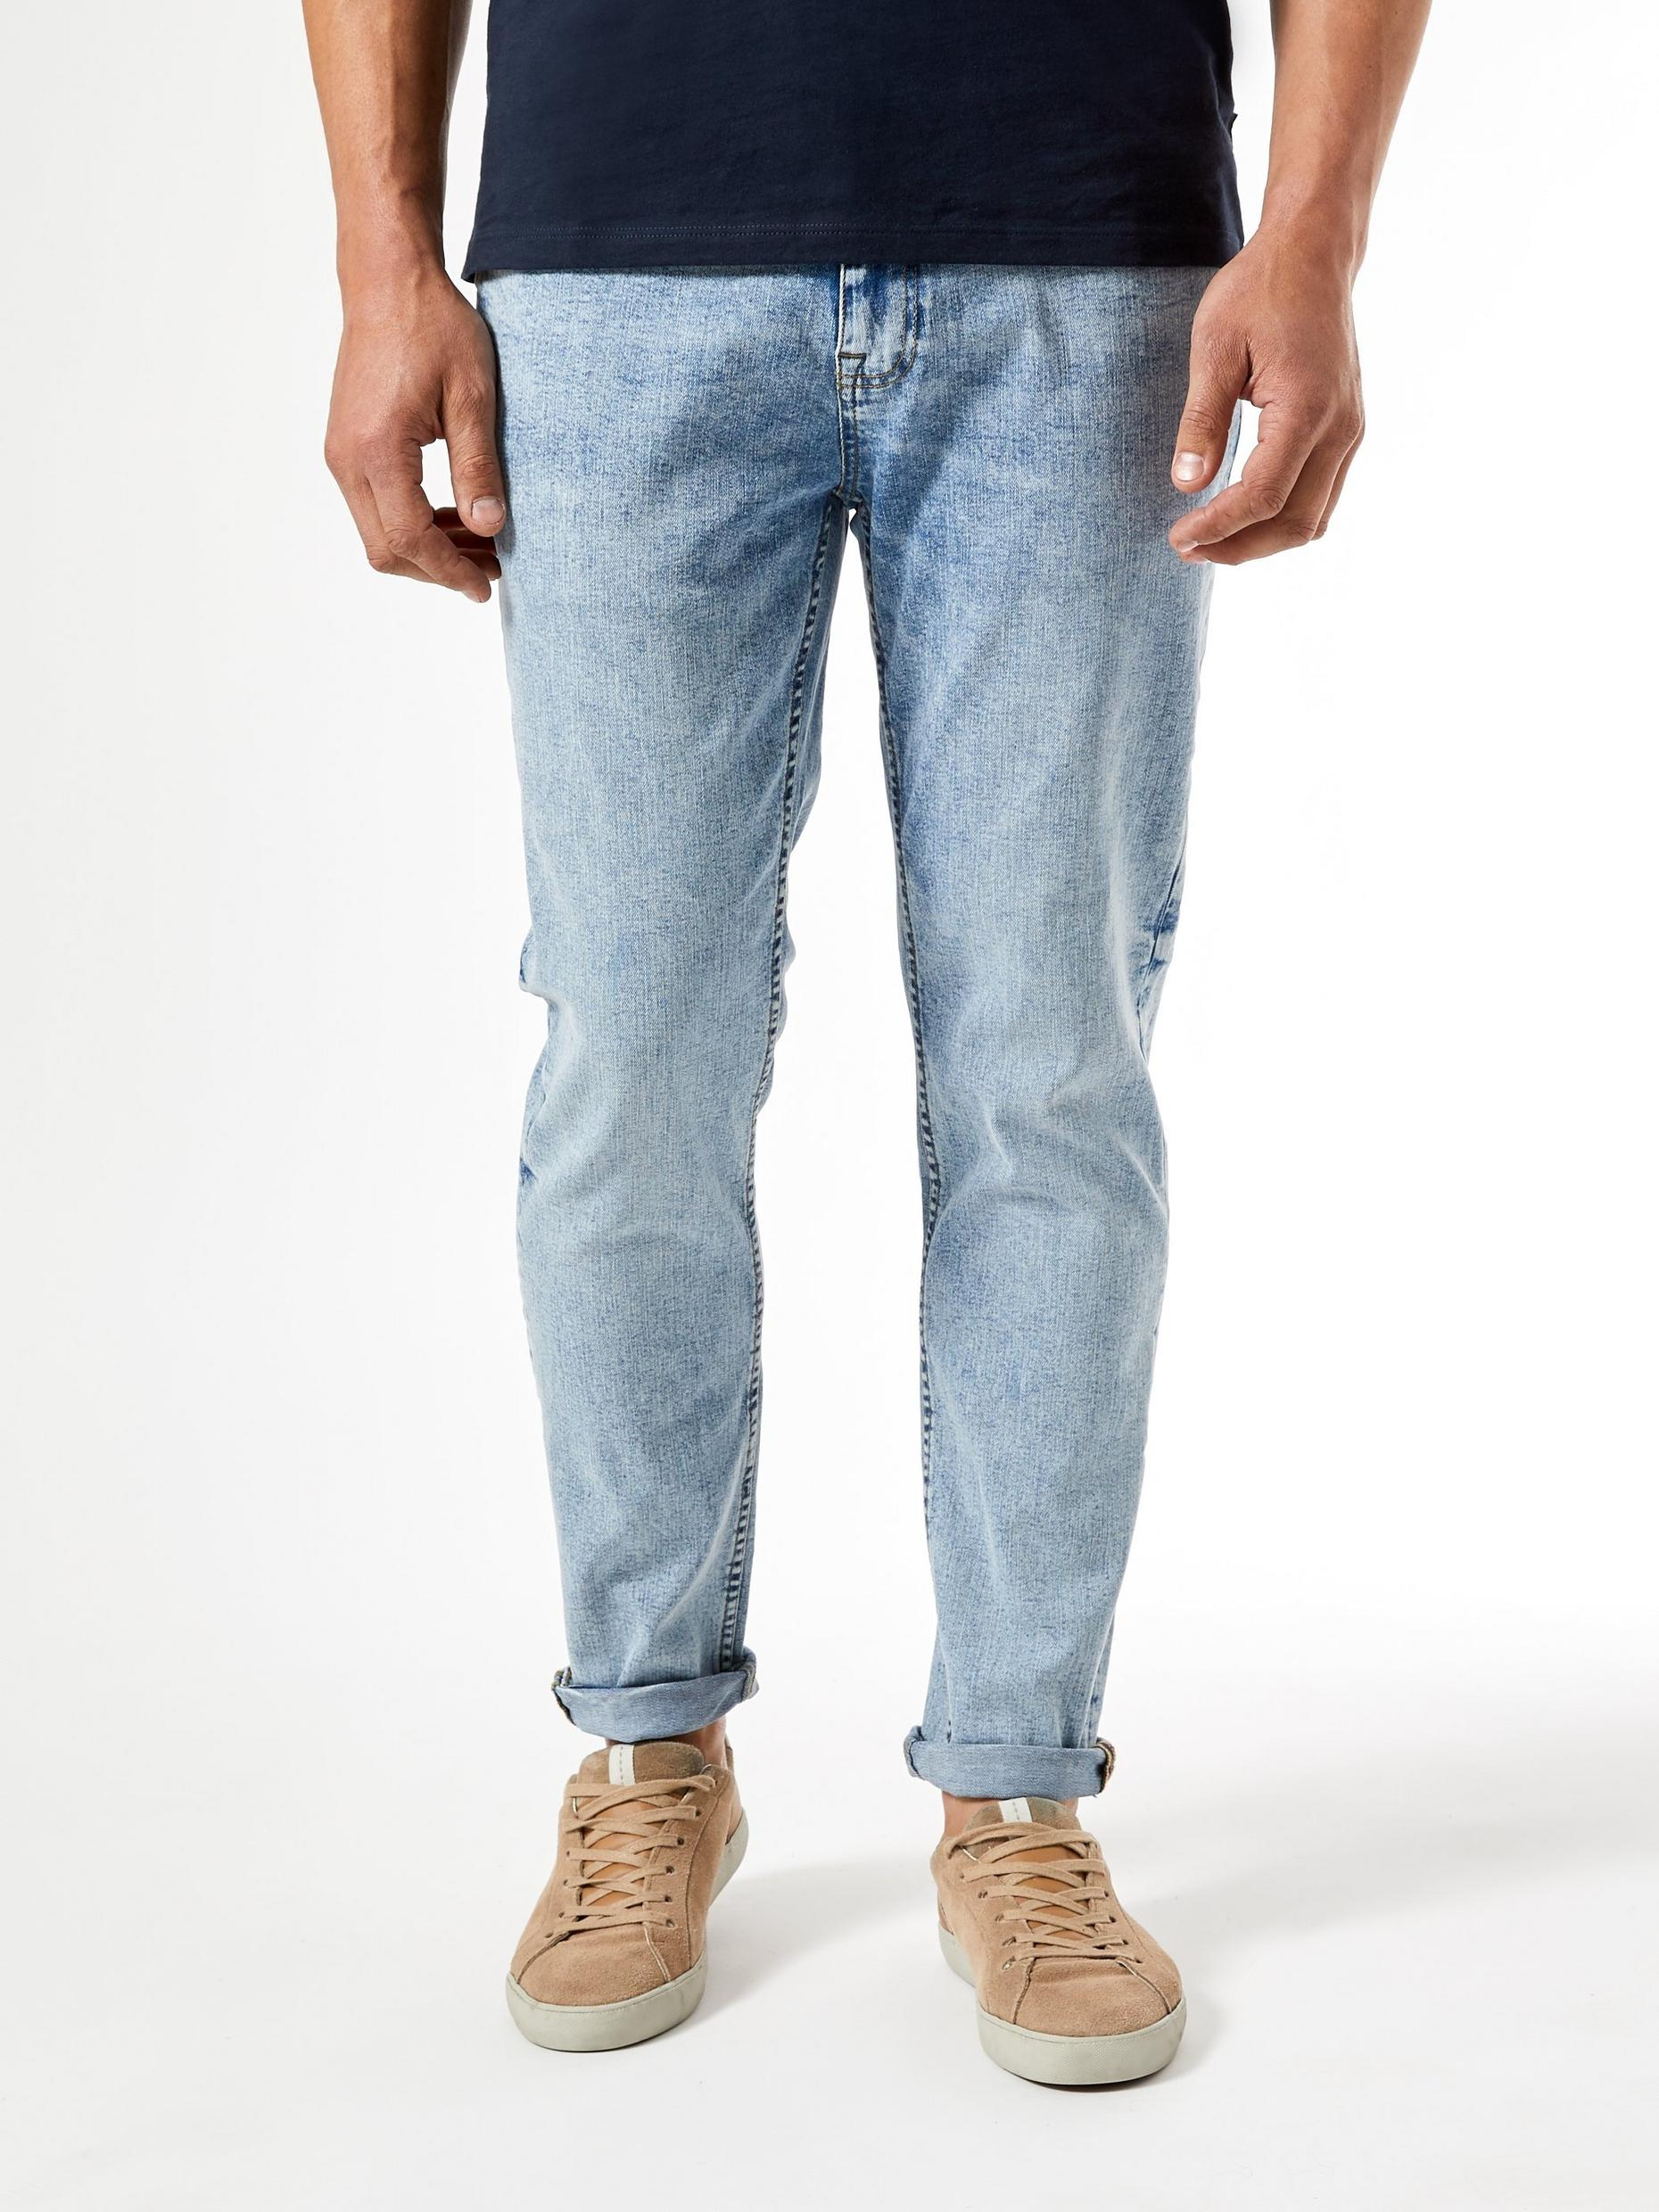 Tapered Vintage Light Wash Organic Jeans